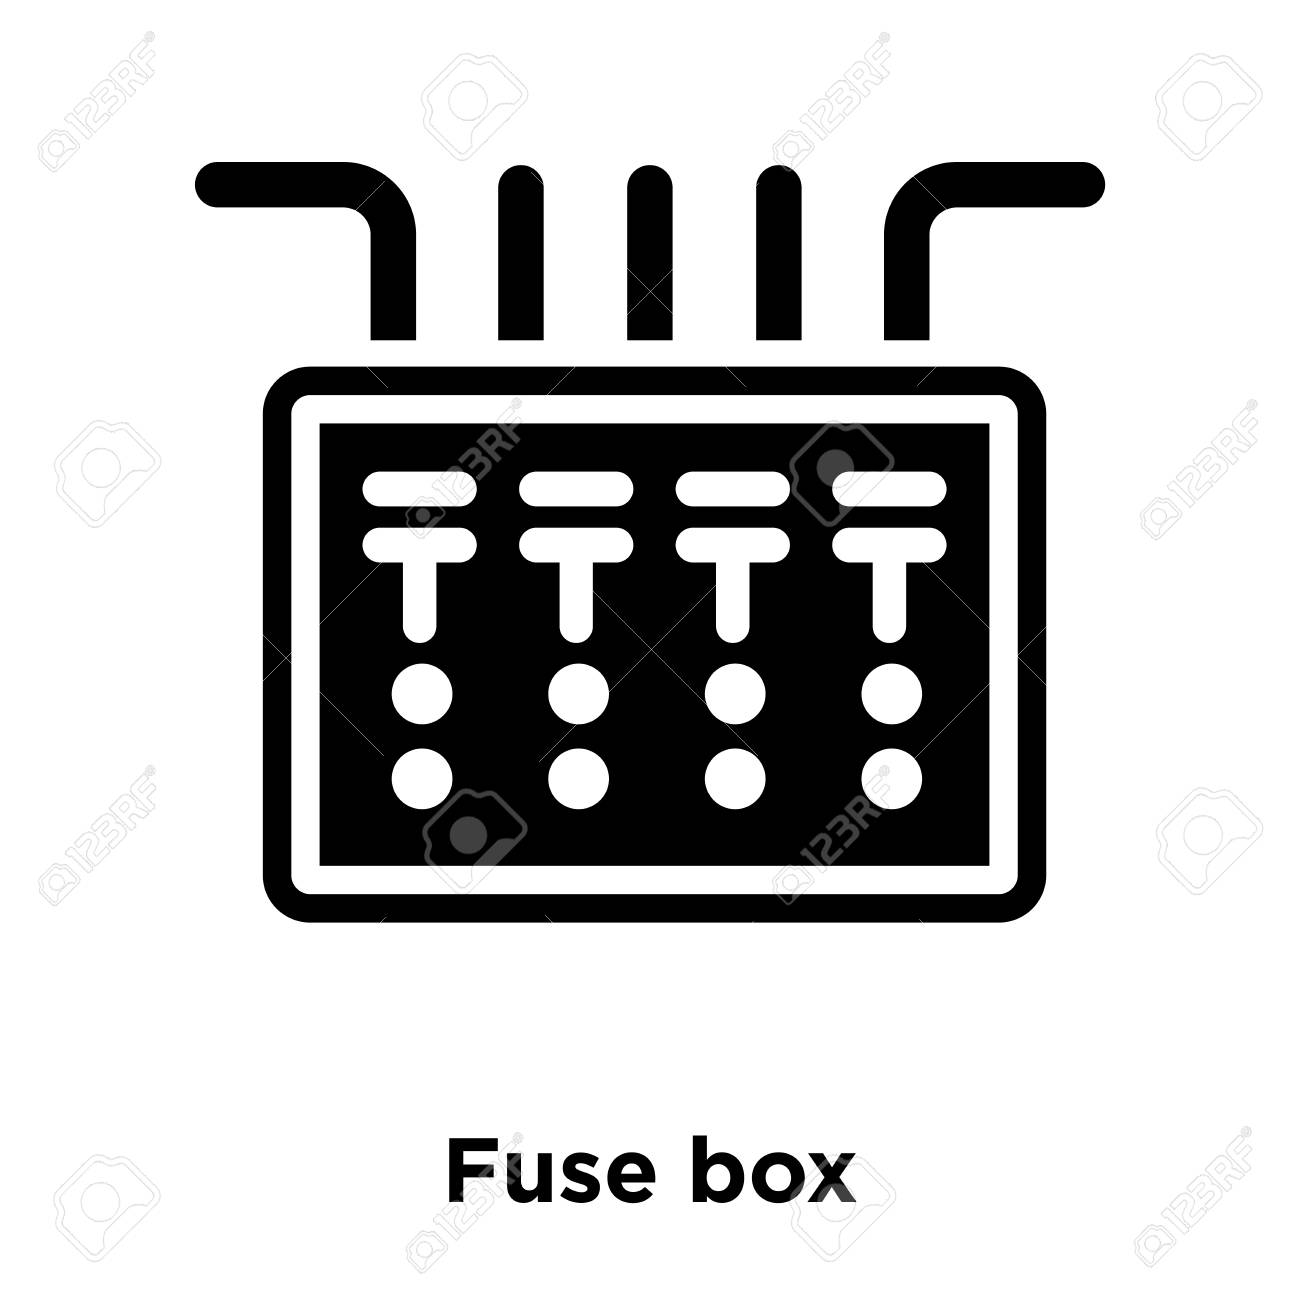 hight resolution of fuse box log in